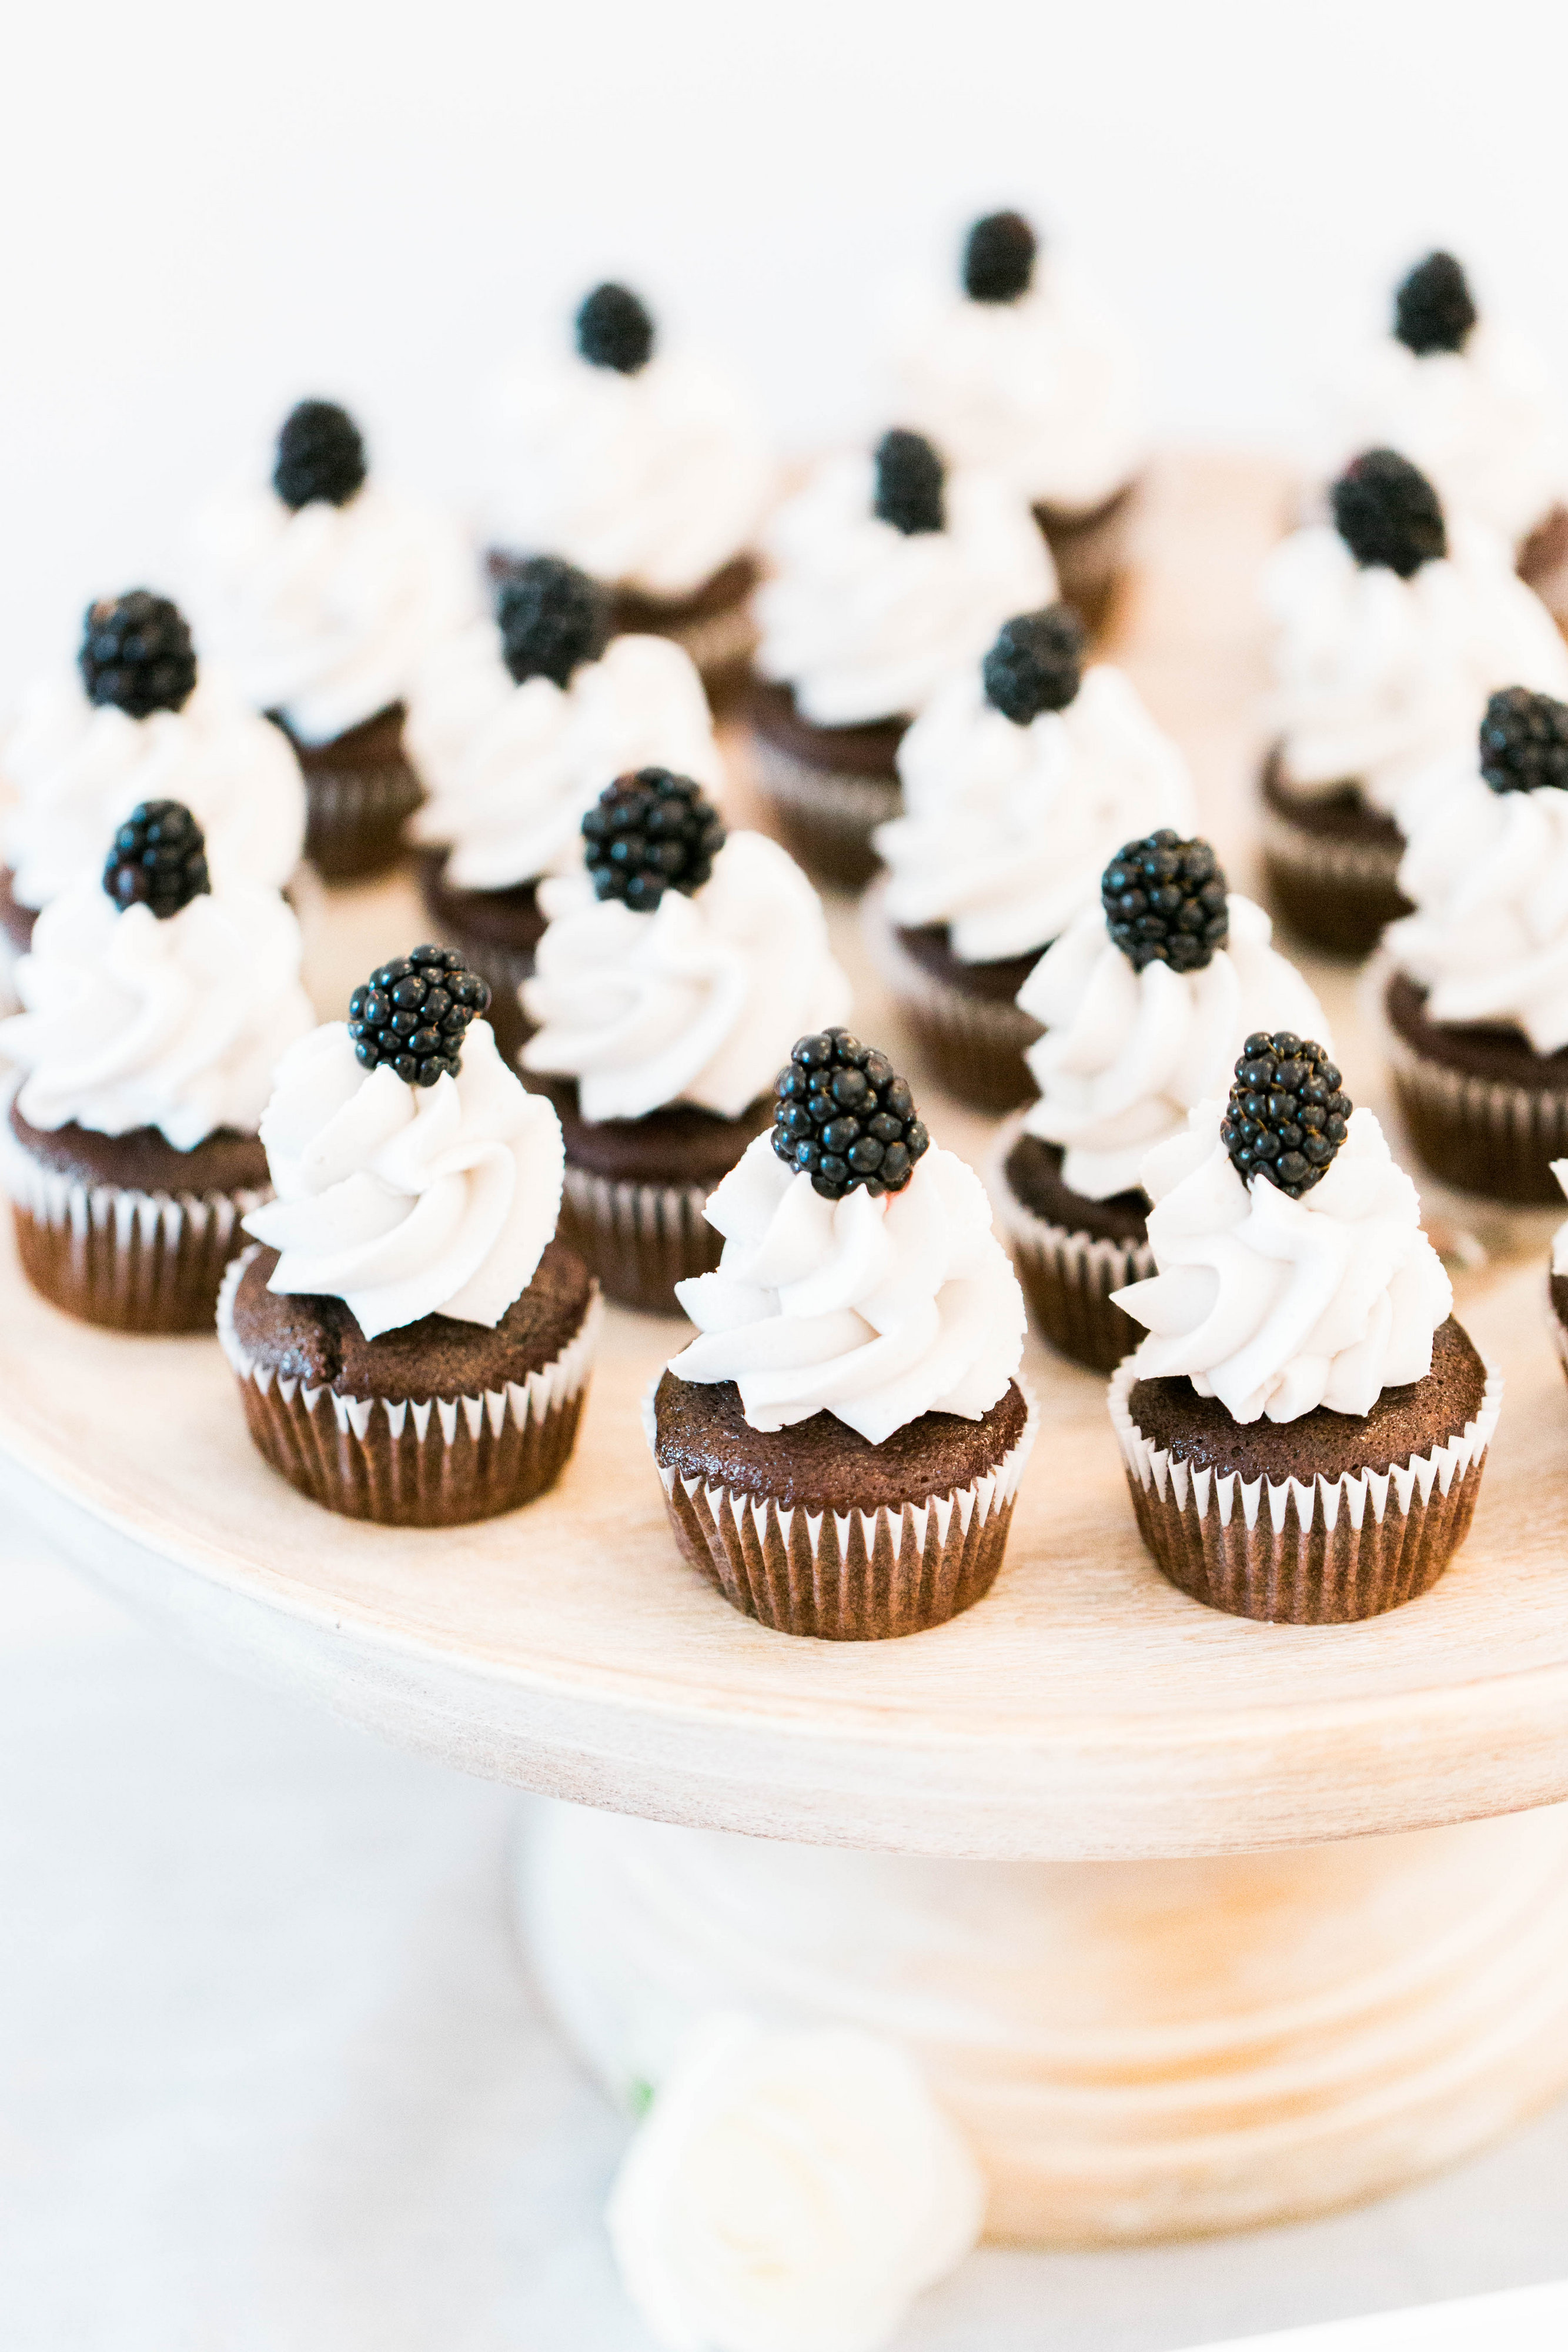 1_Blog Archives - Page 6 of 29 - Bridal Shower Ideas - Themes